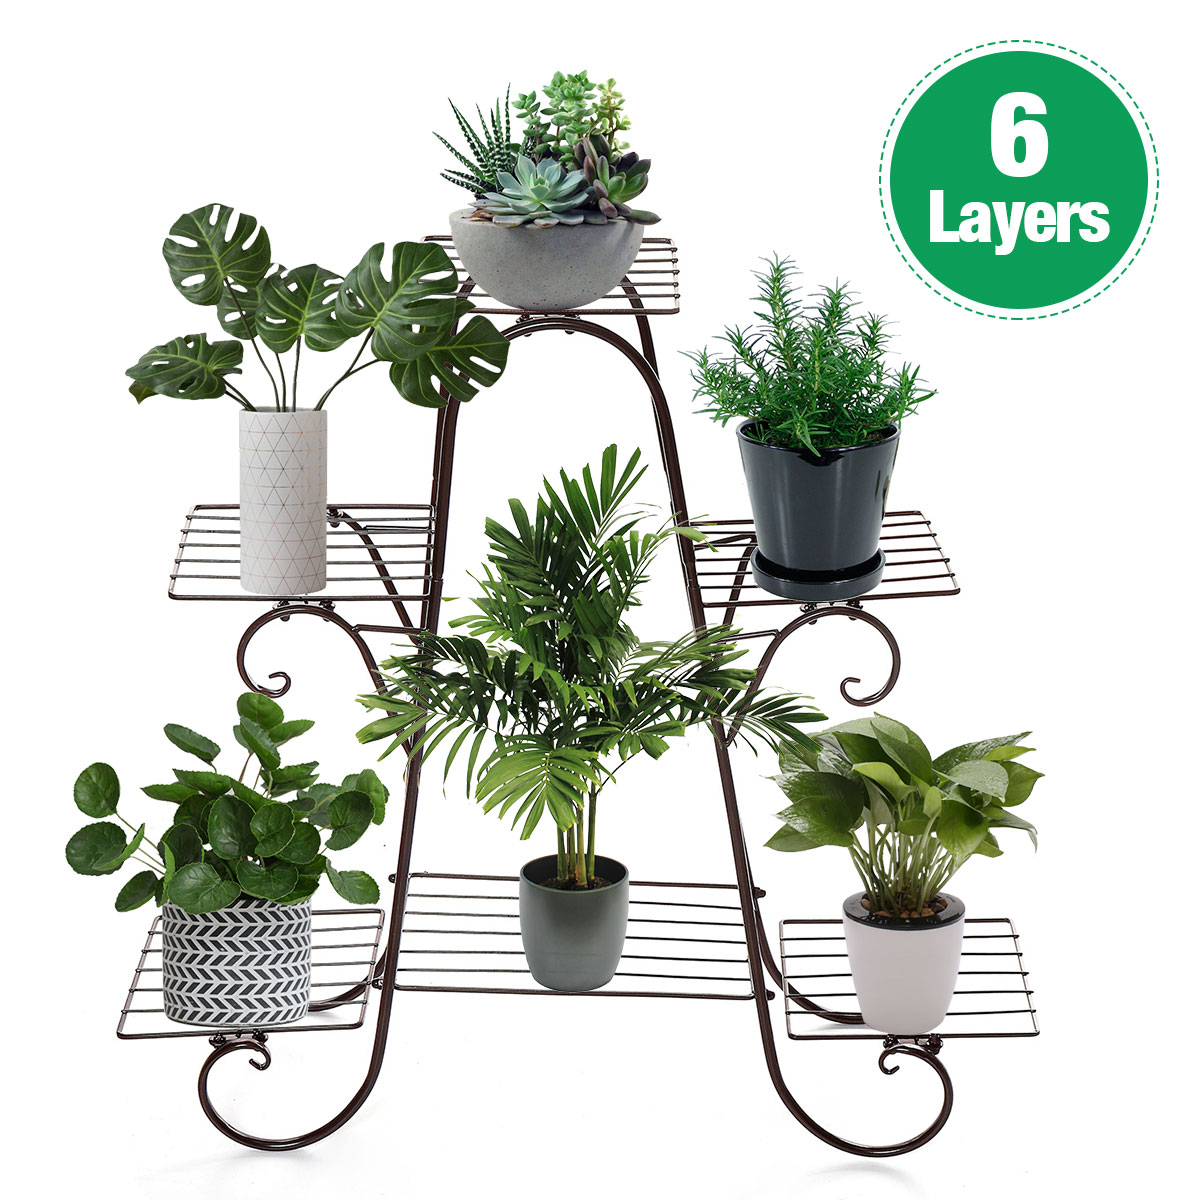 6 Layers European Wrought Iron Flower Stand Indoor Multi-story Flower Stand Rack Floor-standing Balcony Flower Pot Shelves